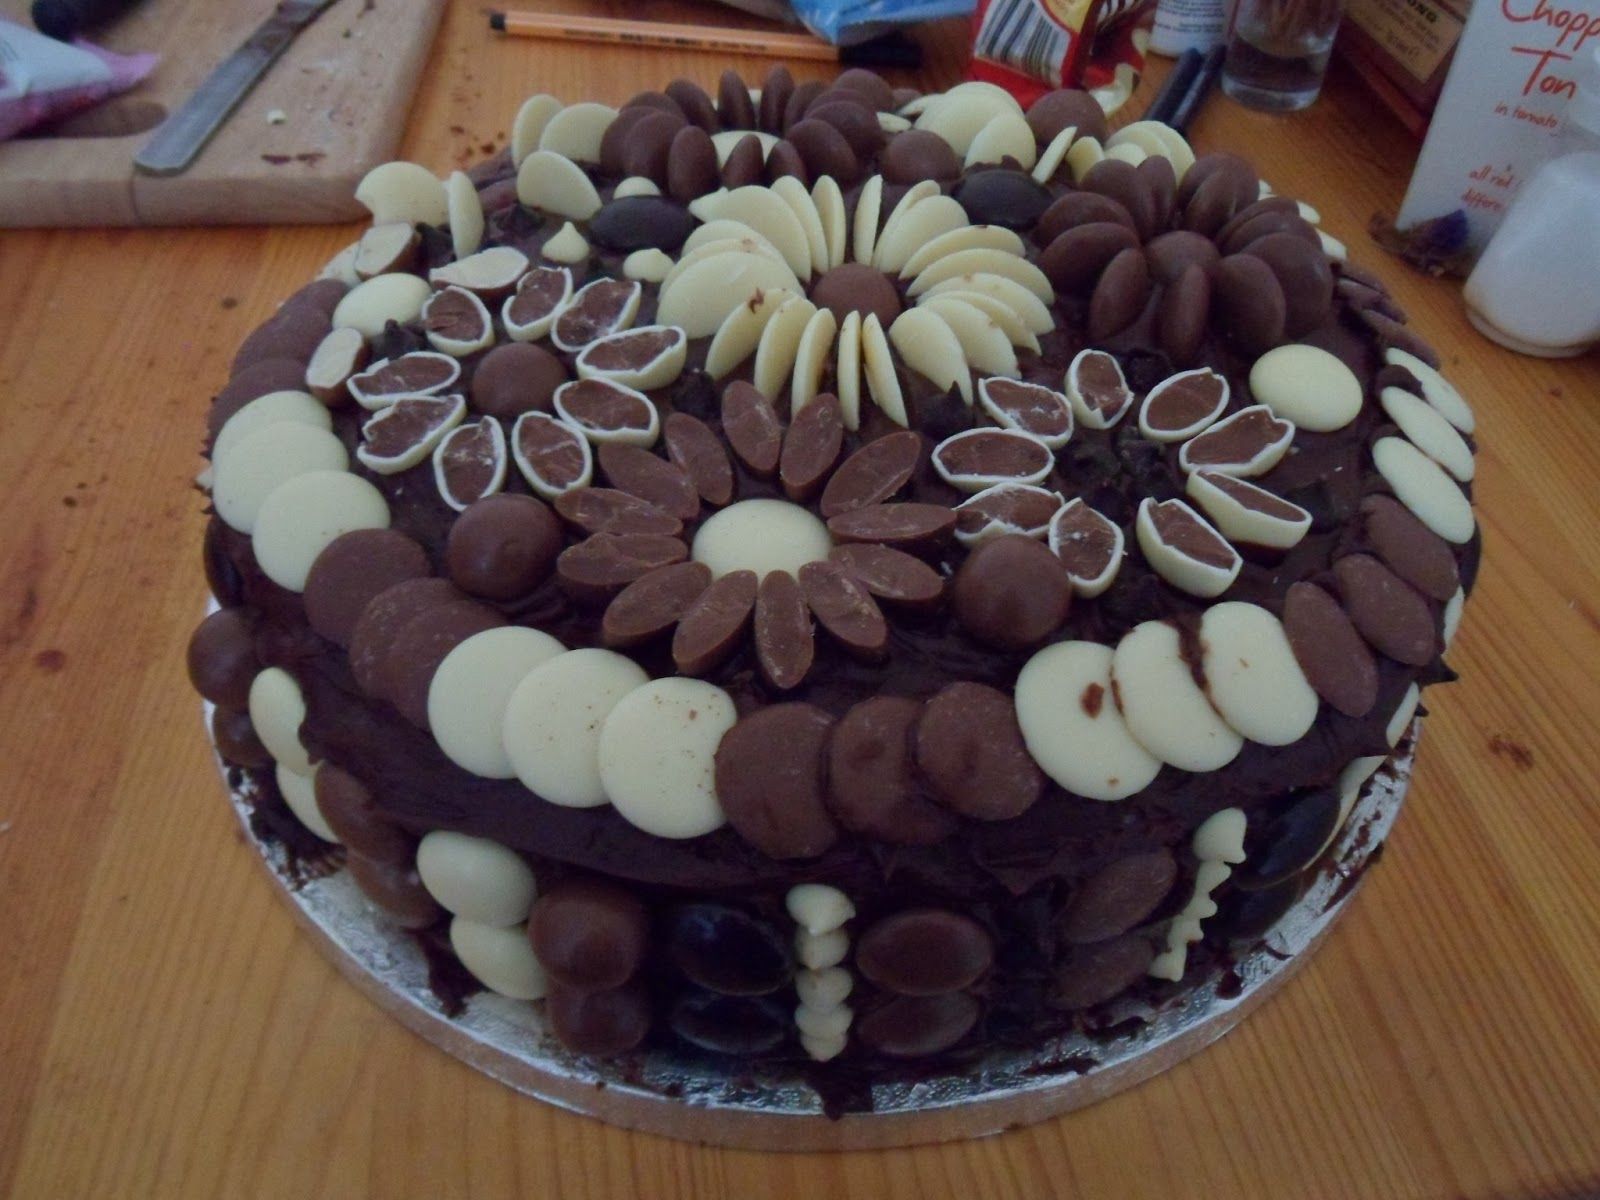 How To Make Chocolate Flower Cake Decorations Chocolate flowers